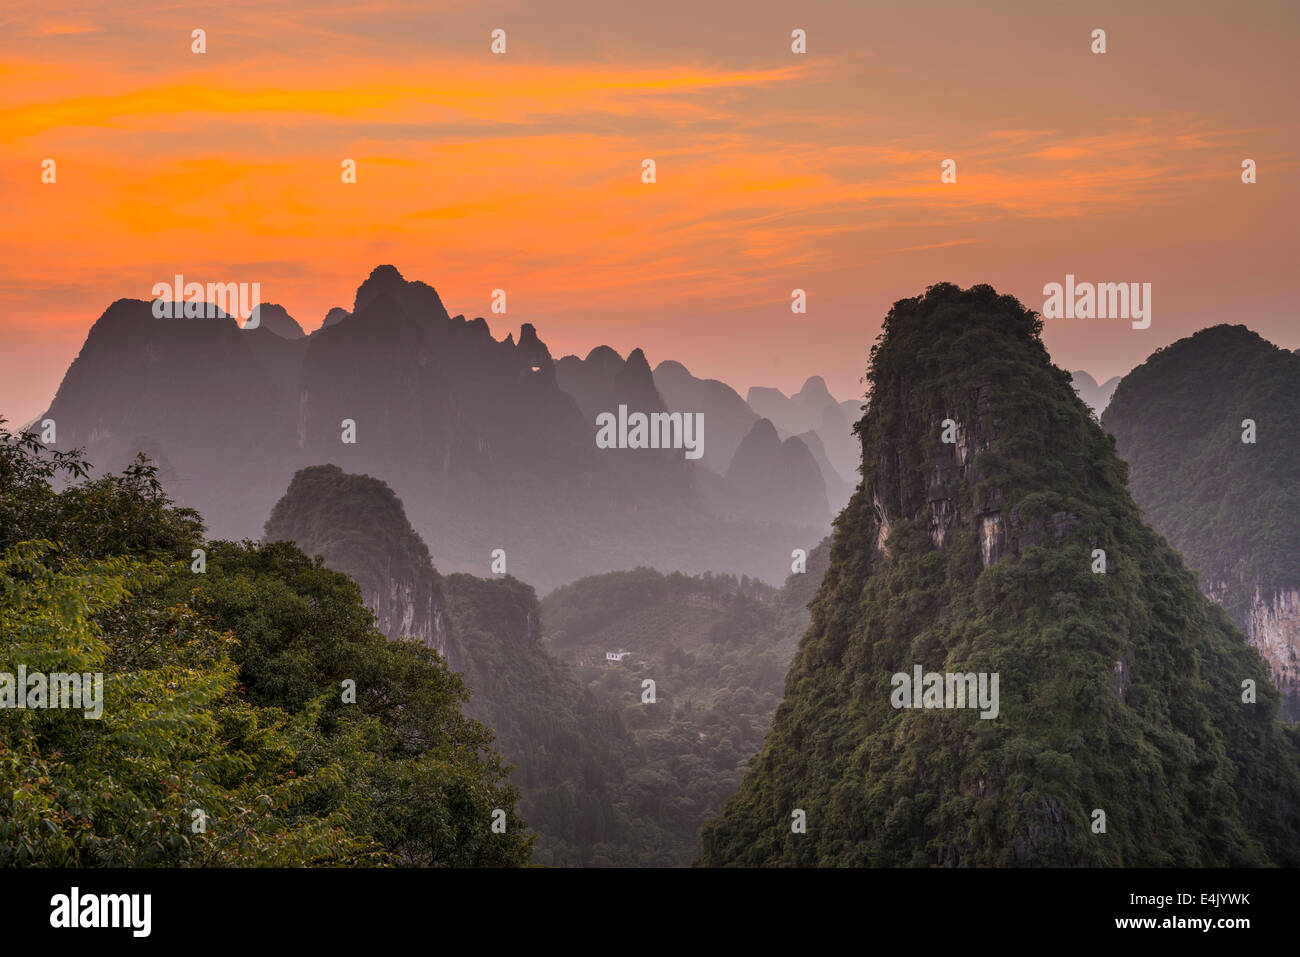 Karst Gebirgslandschaft in Xingping, Provinz Guangxi, China. Stockbild